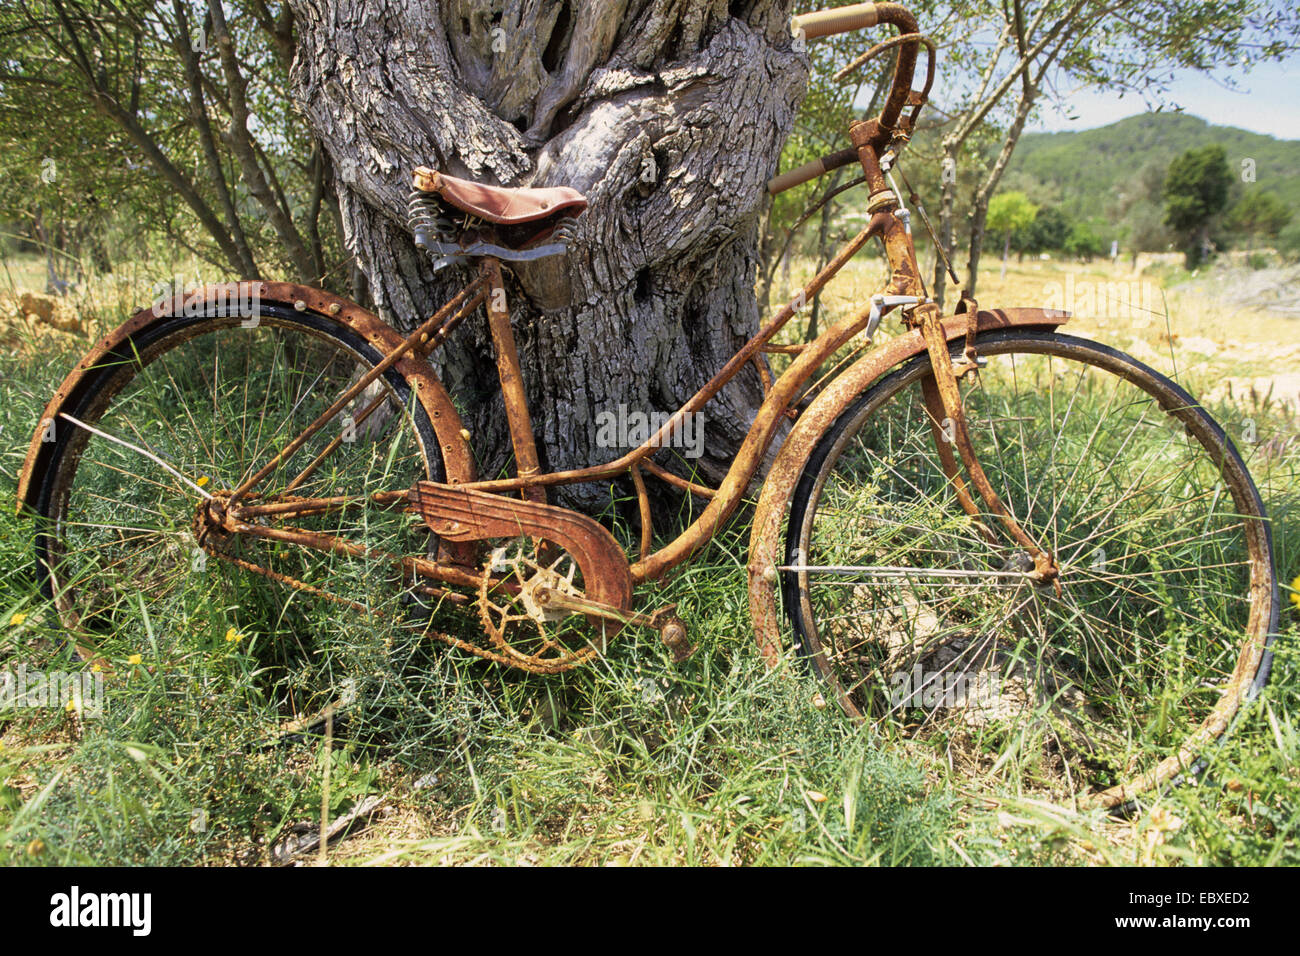 forgotten rusty bycicle on a meadow, Spain, Balearen, Ibiza - Stock Image